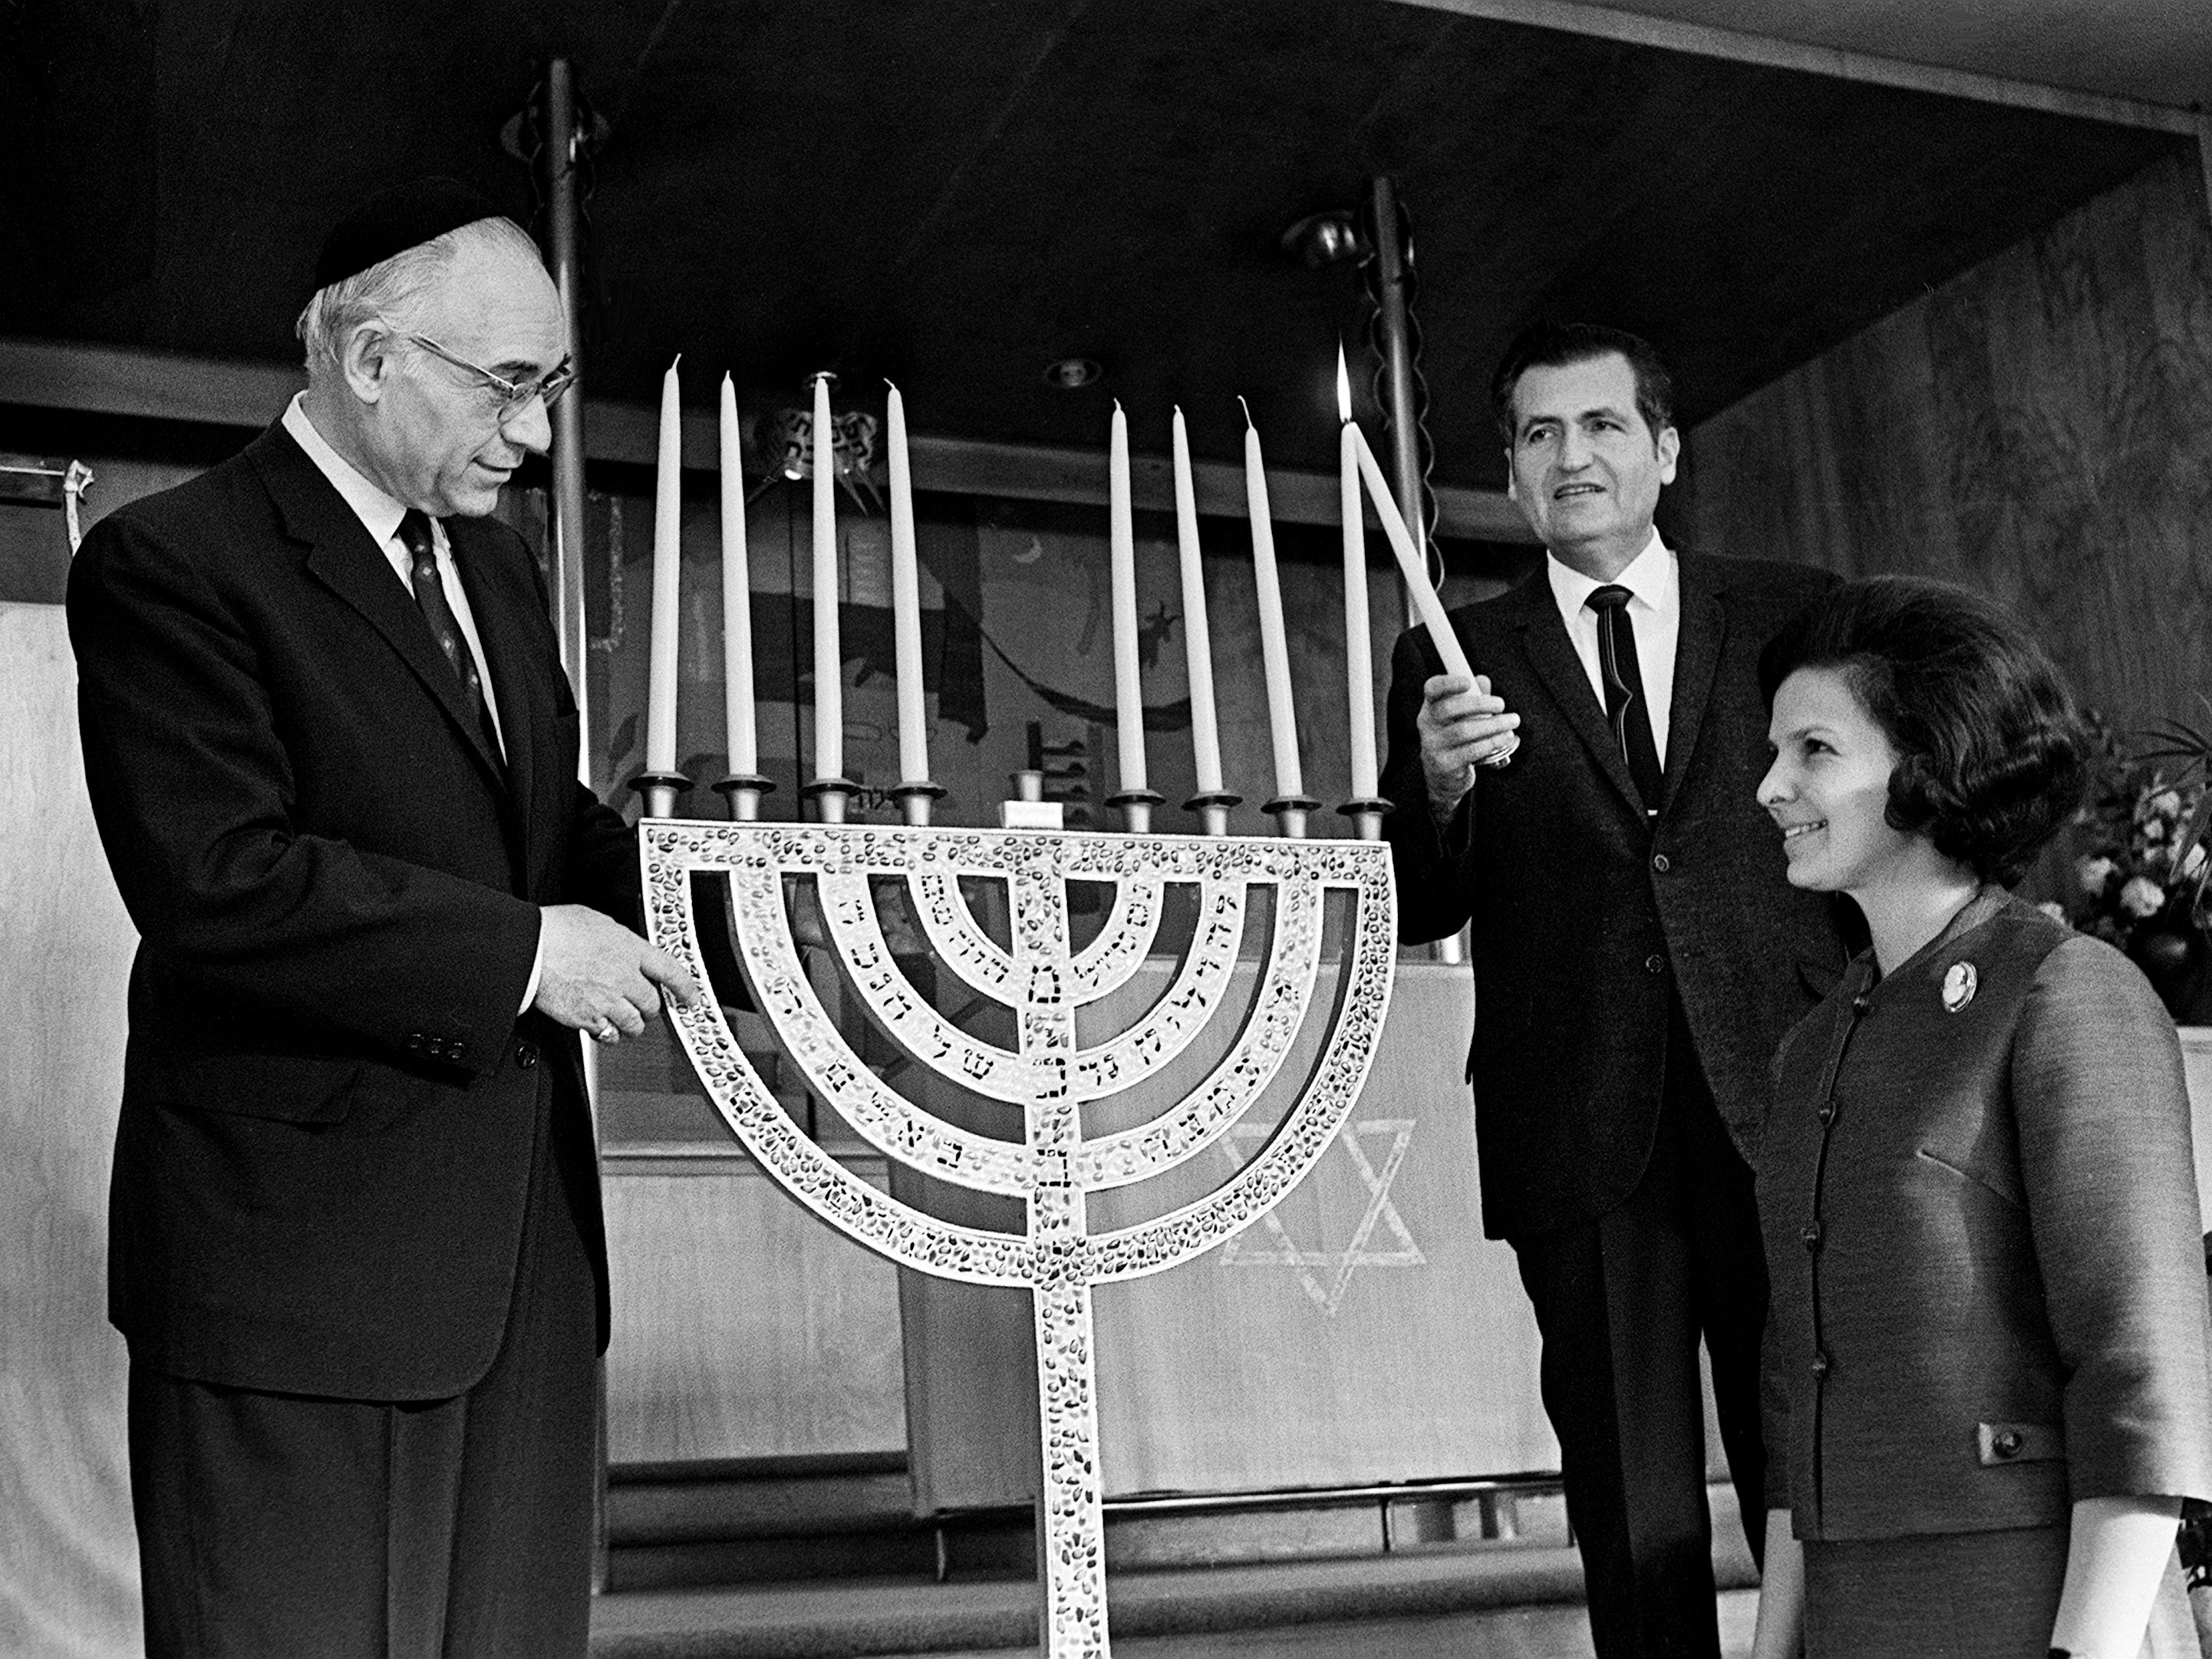 Cantor Bernard Glusman, left, of the West End Synagogue, checks the Menorah that he constructed while Rabbi Jerome Kestenbaum, center, checks the candles Dec. 11, 1968, for the upcoming Hanukkah. Assisting in the final check is Mrs. Leonard Seloff, president of the West End Sisterhood.